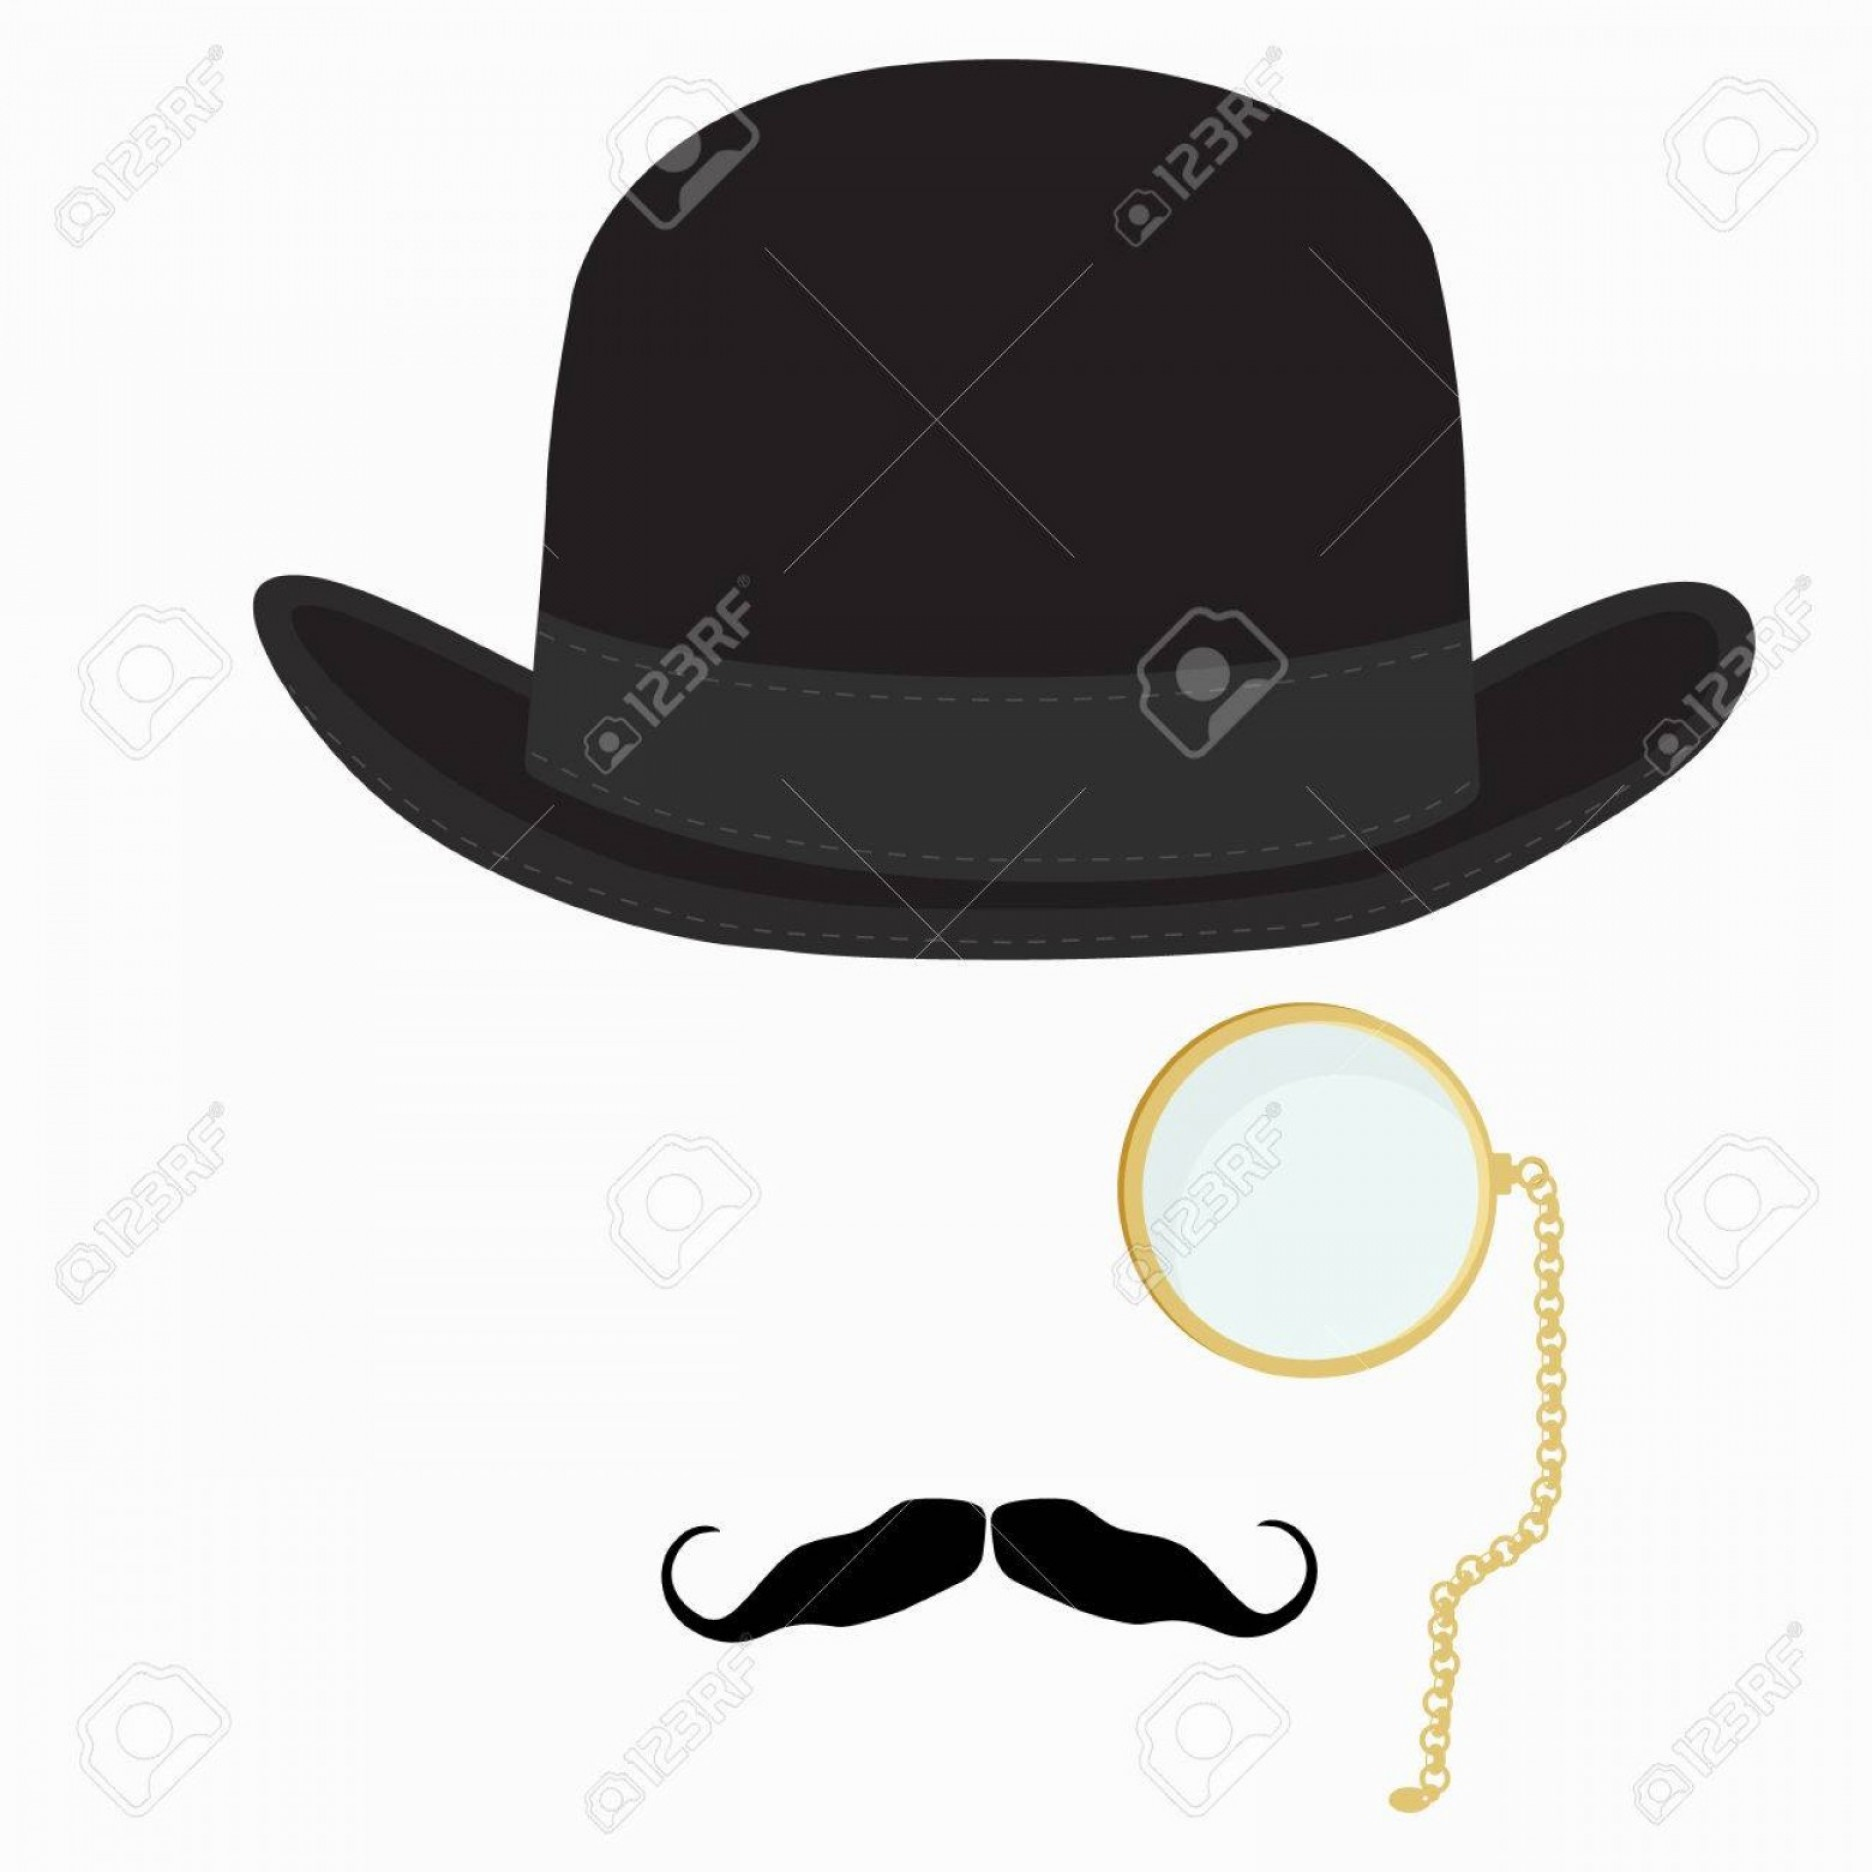 Bowler Hat Vector: Photostock Vector Vector Illustration Of Black Derby Hat Mustache And Golden Monocle With Chain Bowler Hat Black Fashi